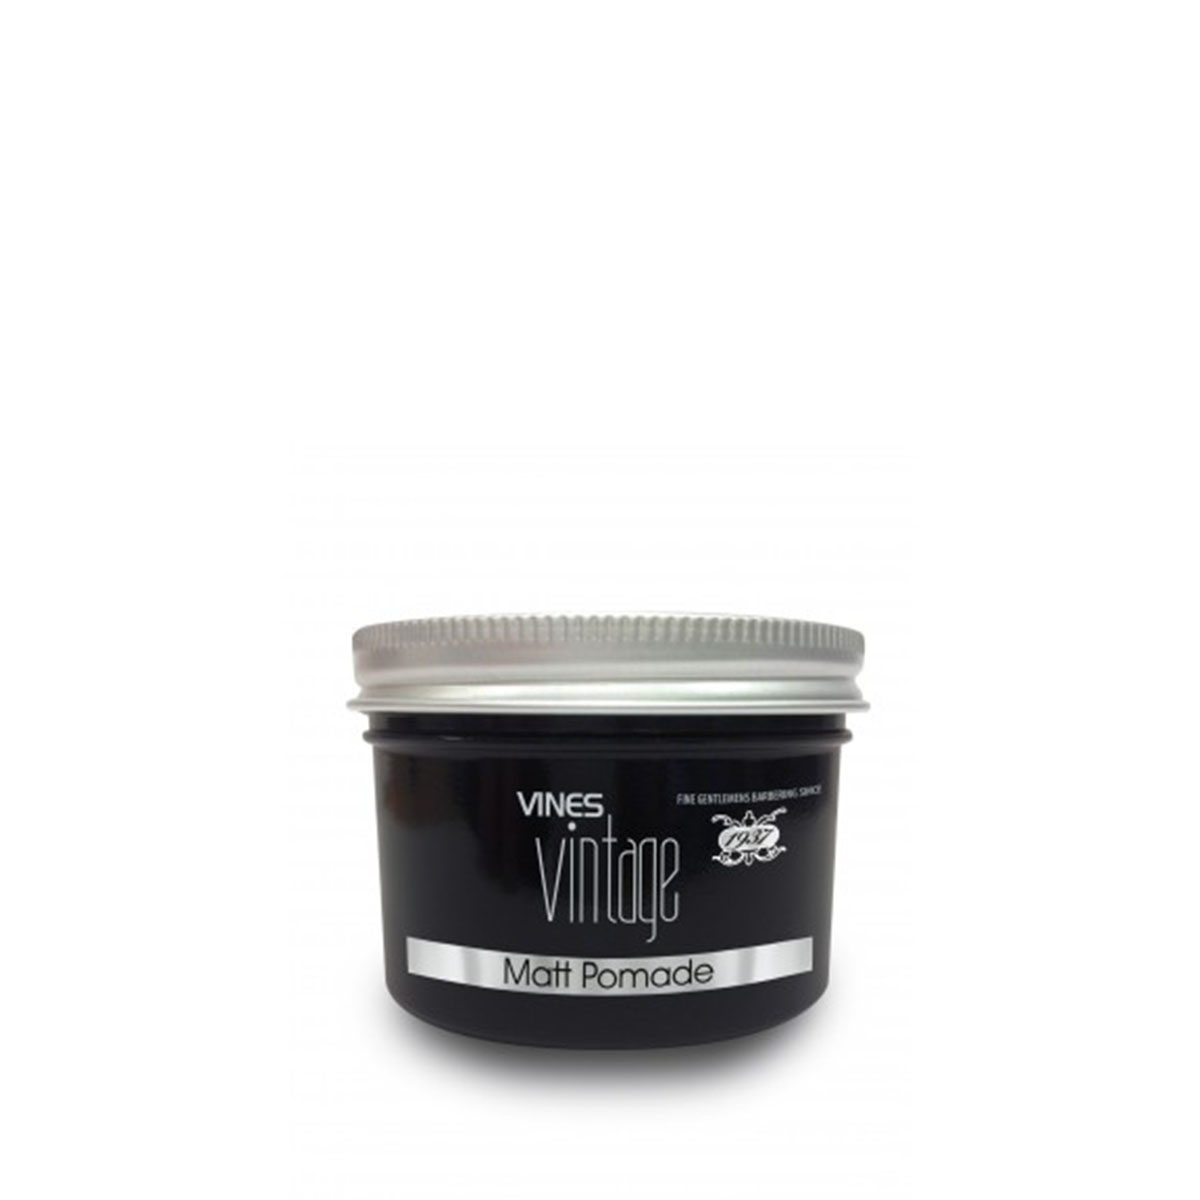 Matt Pomade 125ml Vines Vintage